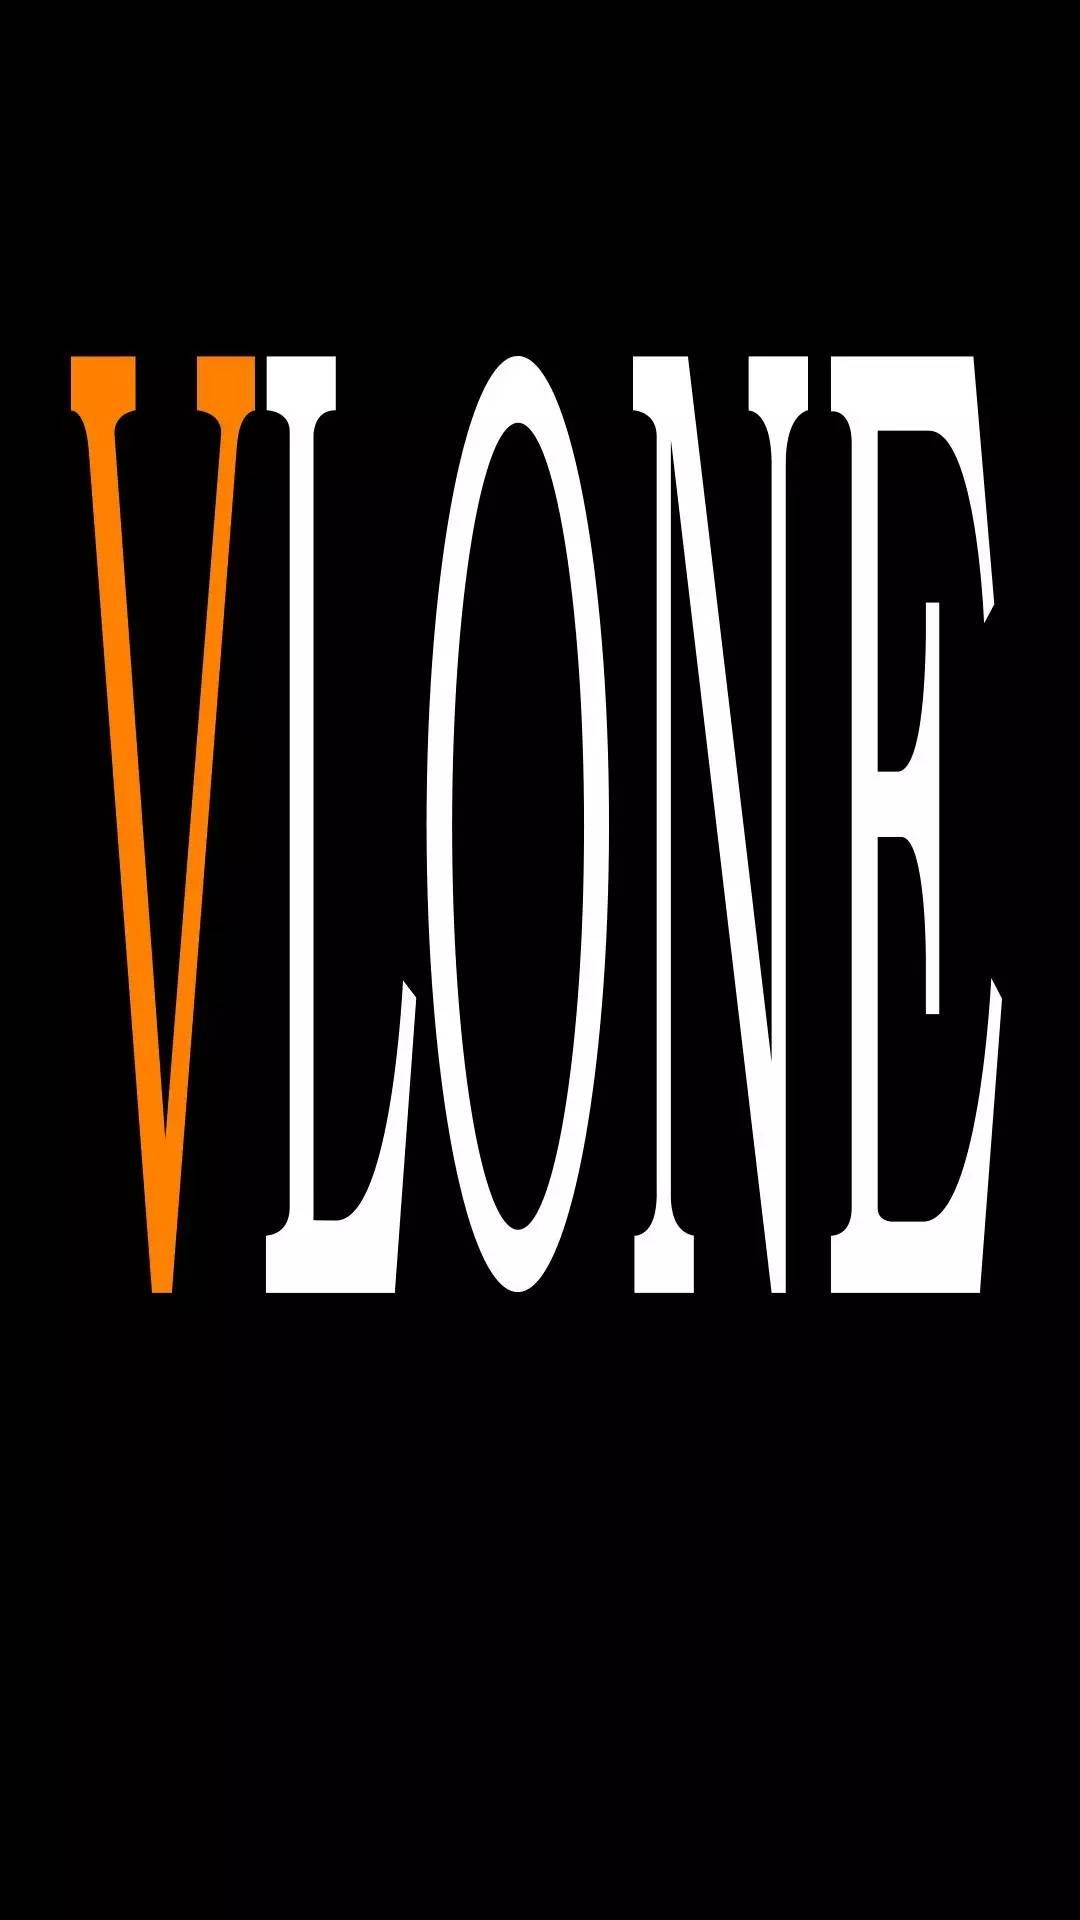 Pin By Lbpkingburger On Cvs Hunsfg Vlone Logo Iphone Wallpaper Vintage Retro Wallpaper